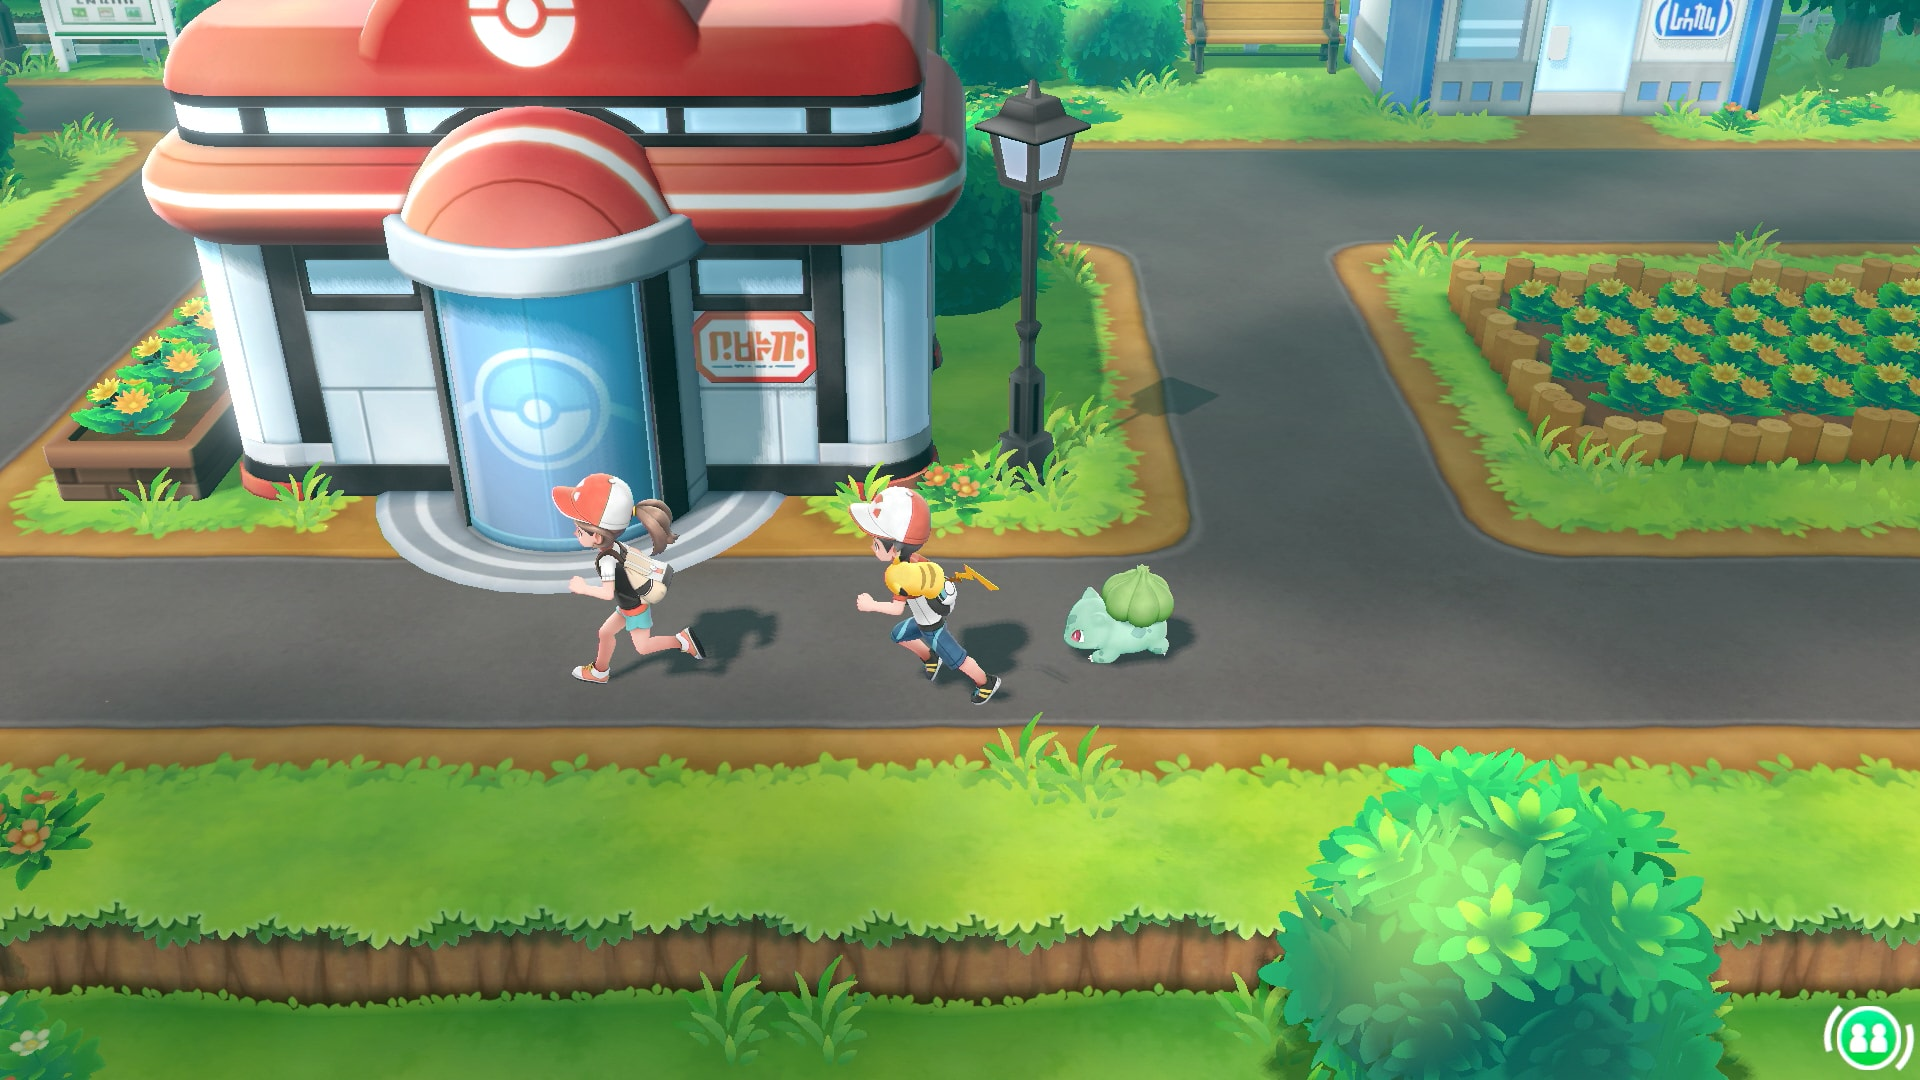 Multiplayer Option -    Since this is officially the first core Pokémon game to come to a 'console', it is the first time we are given the opportunity to have multiplayer functionality. In these new games, Game Freak is taking advantage of the Switch's tabletop mode, allowing a second player to pop in and out of the game, and assist in battling, as well as catching Pokémon. This opens the door for families who have one switch, but multiple players. Long gone are the days where you have to pass the Gameboy or DS to a friend or sibling, you can play at the same time!